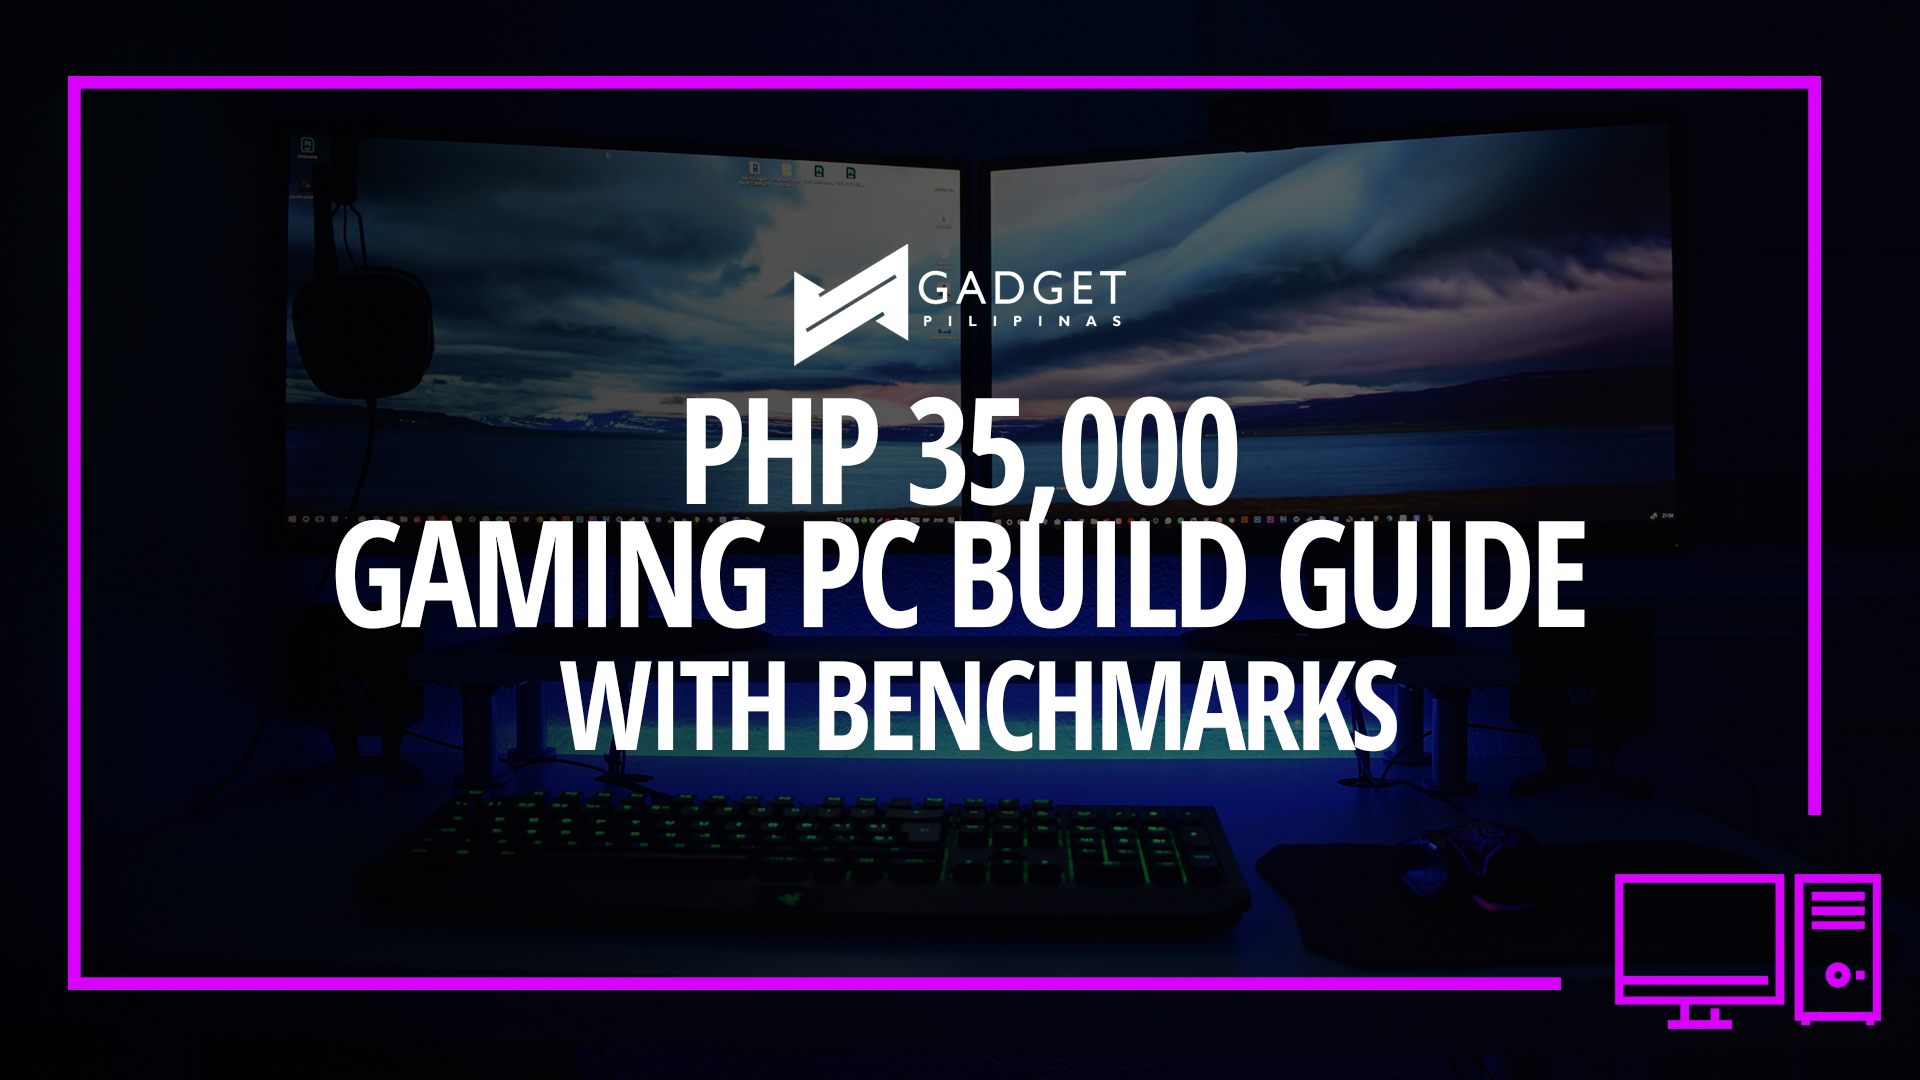 35K Gaming PC Build Guide - 35K PESOS gaming pc build - 35k gaming pc ph - 35k gaming pc philippines